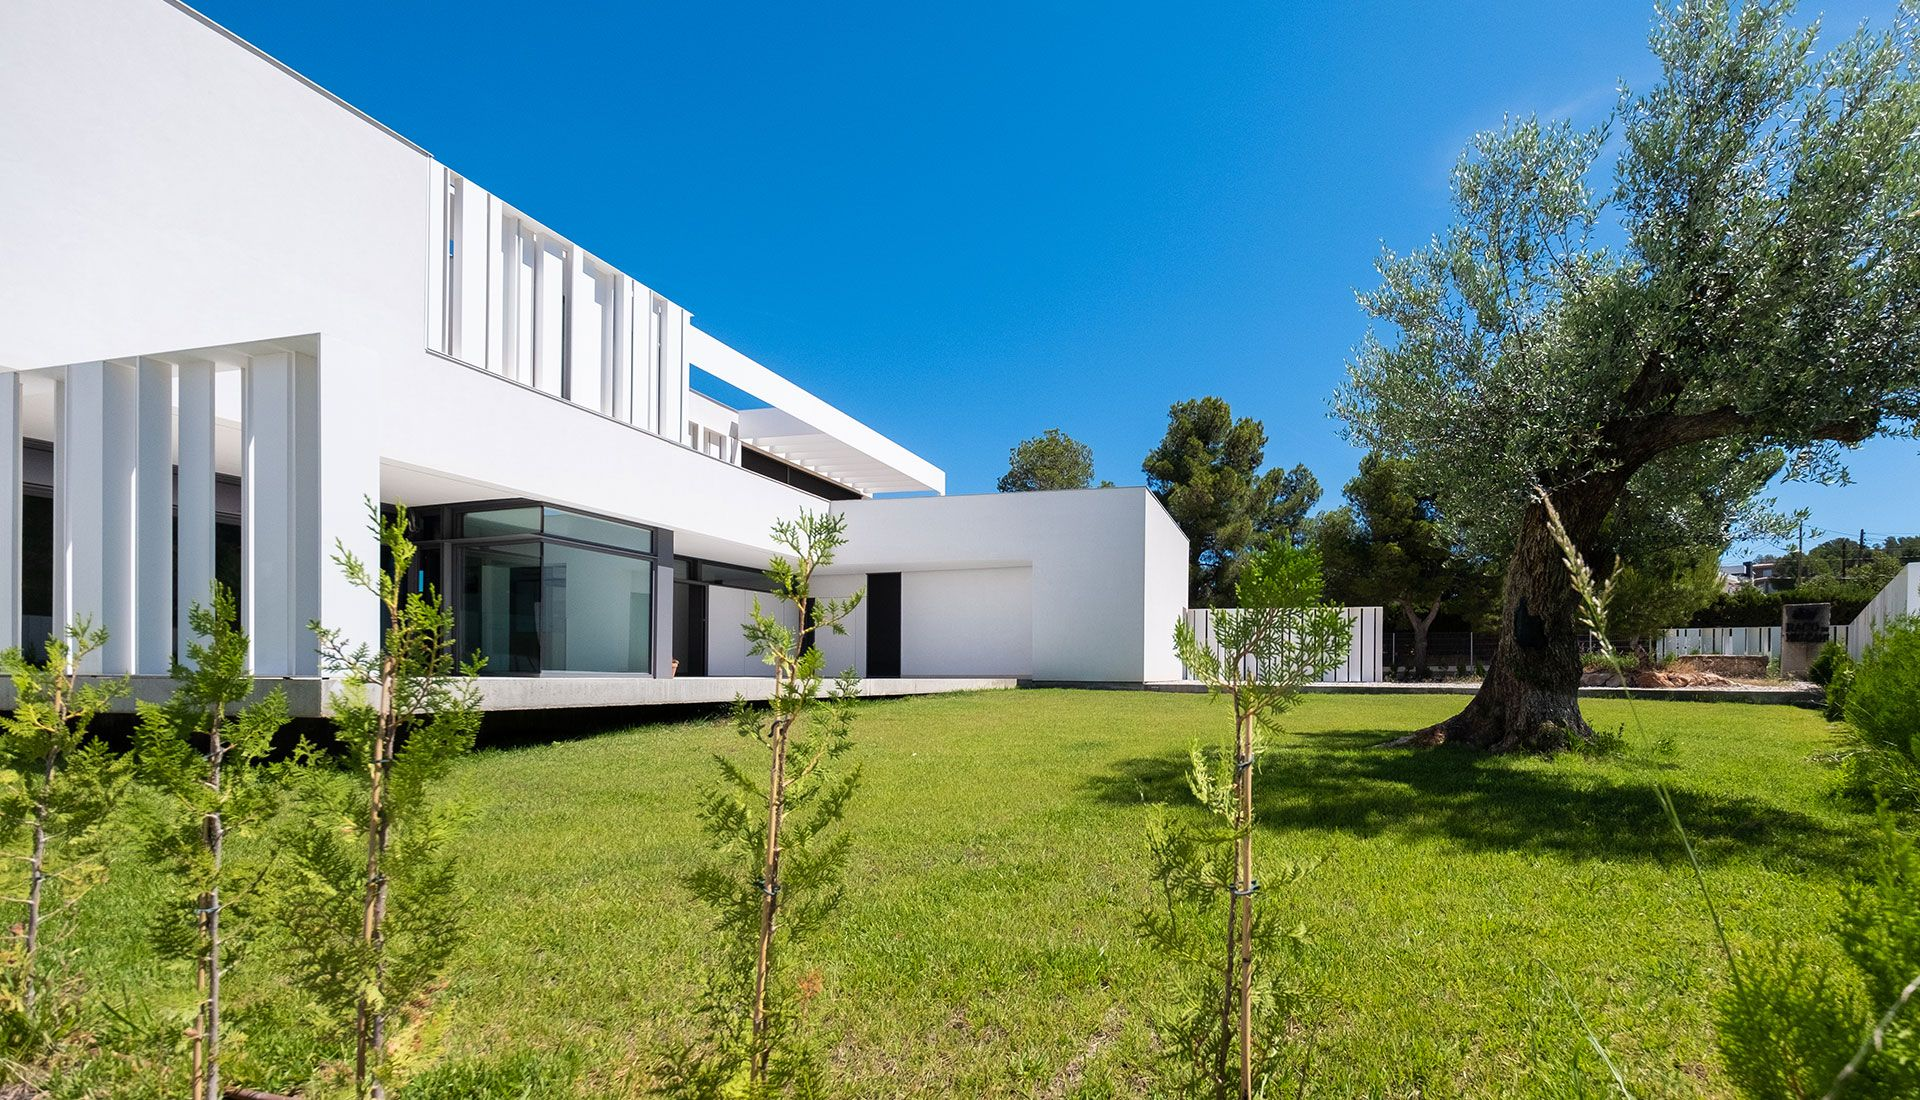 TORTOSA - Steel modular home projects